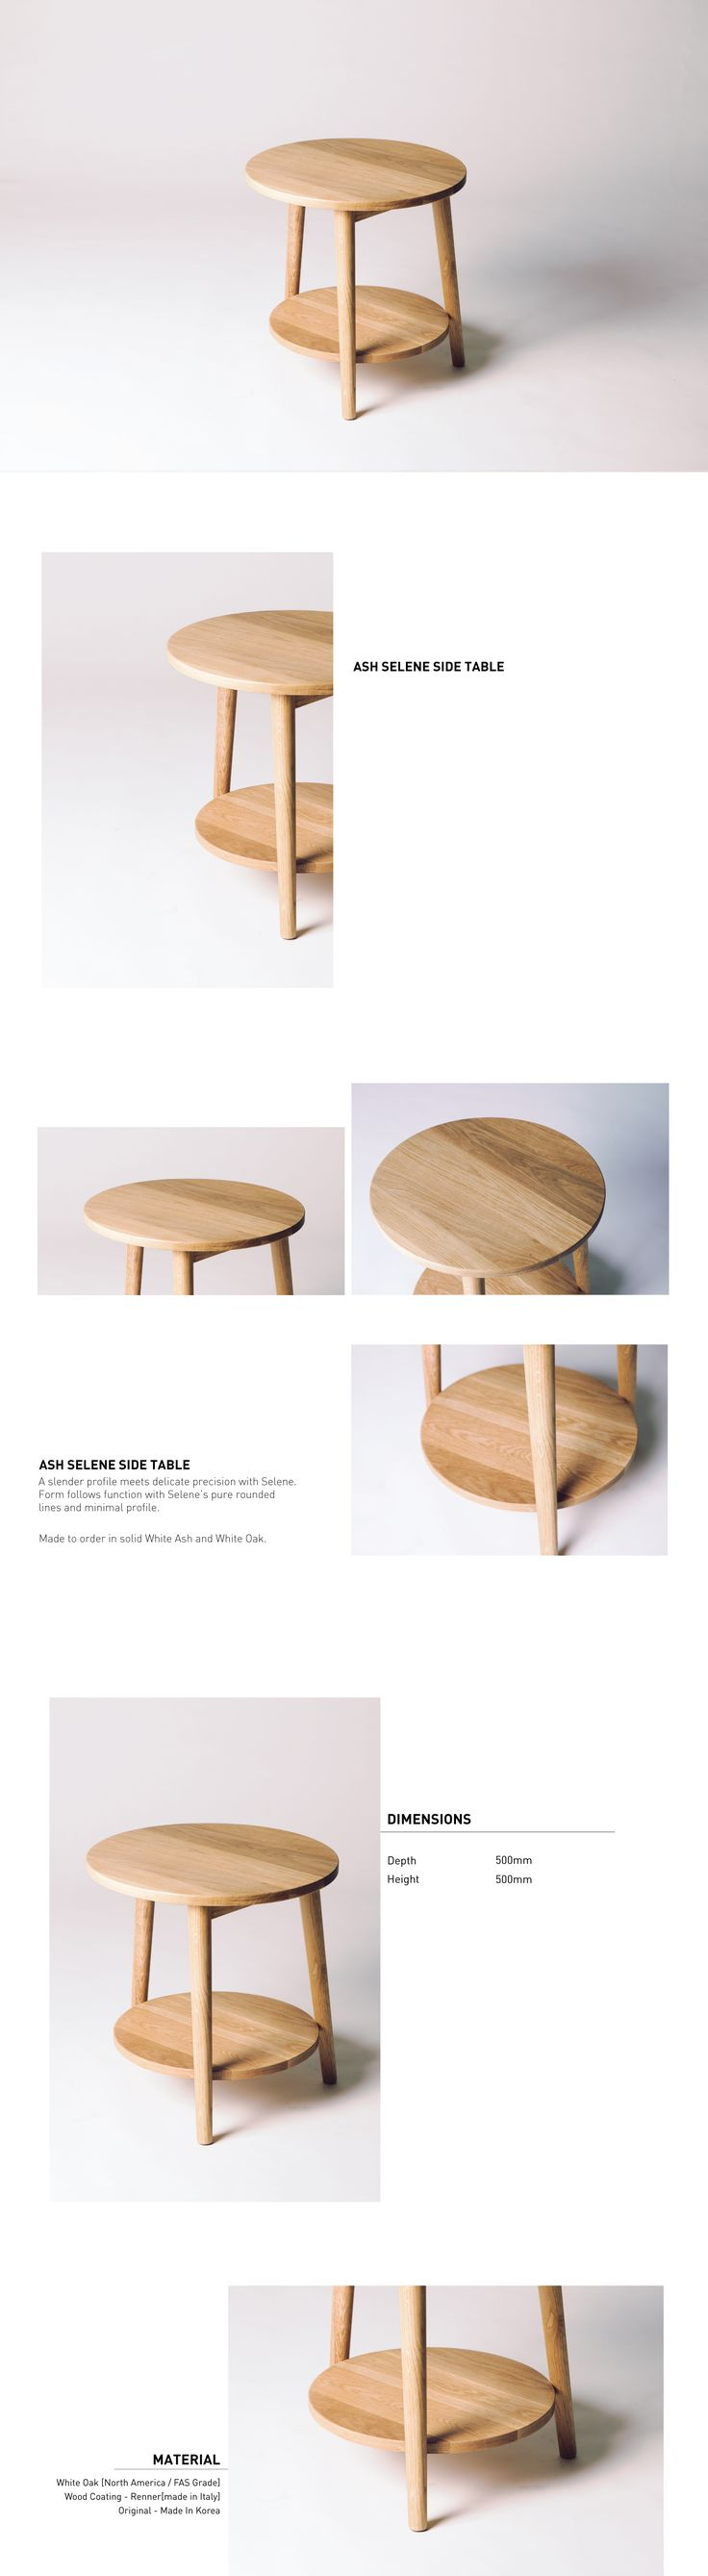 89 best Chair Smth. images on Pinterest | Chairs, Woodworking and ...